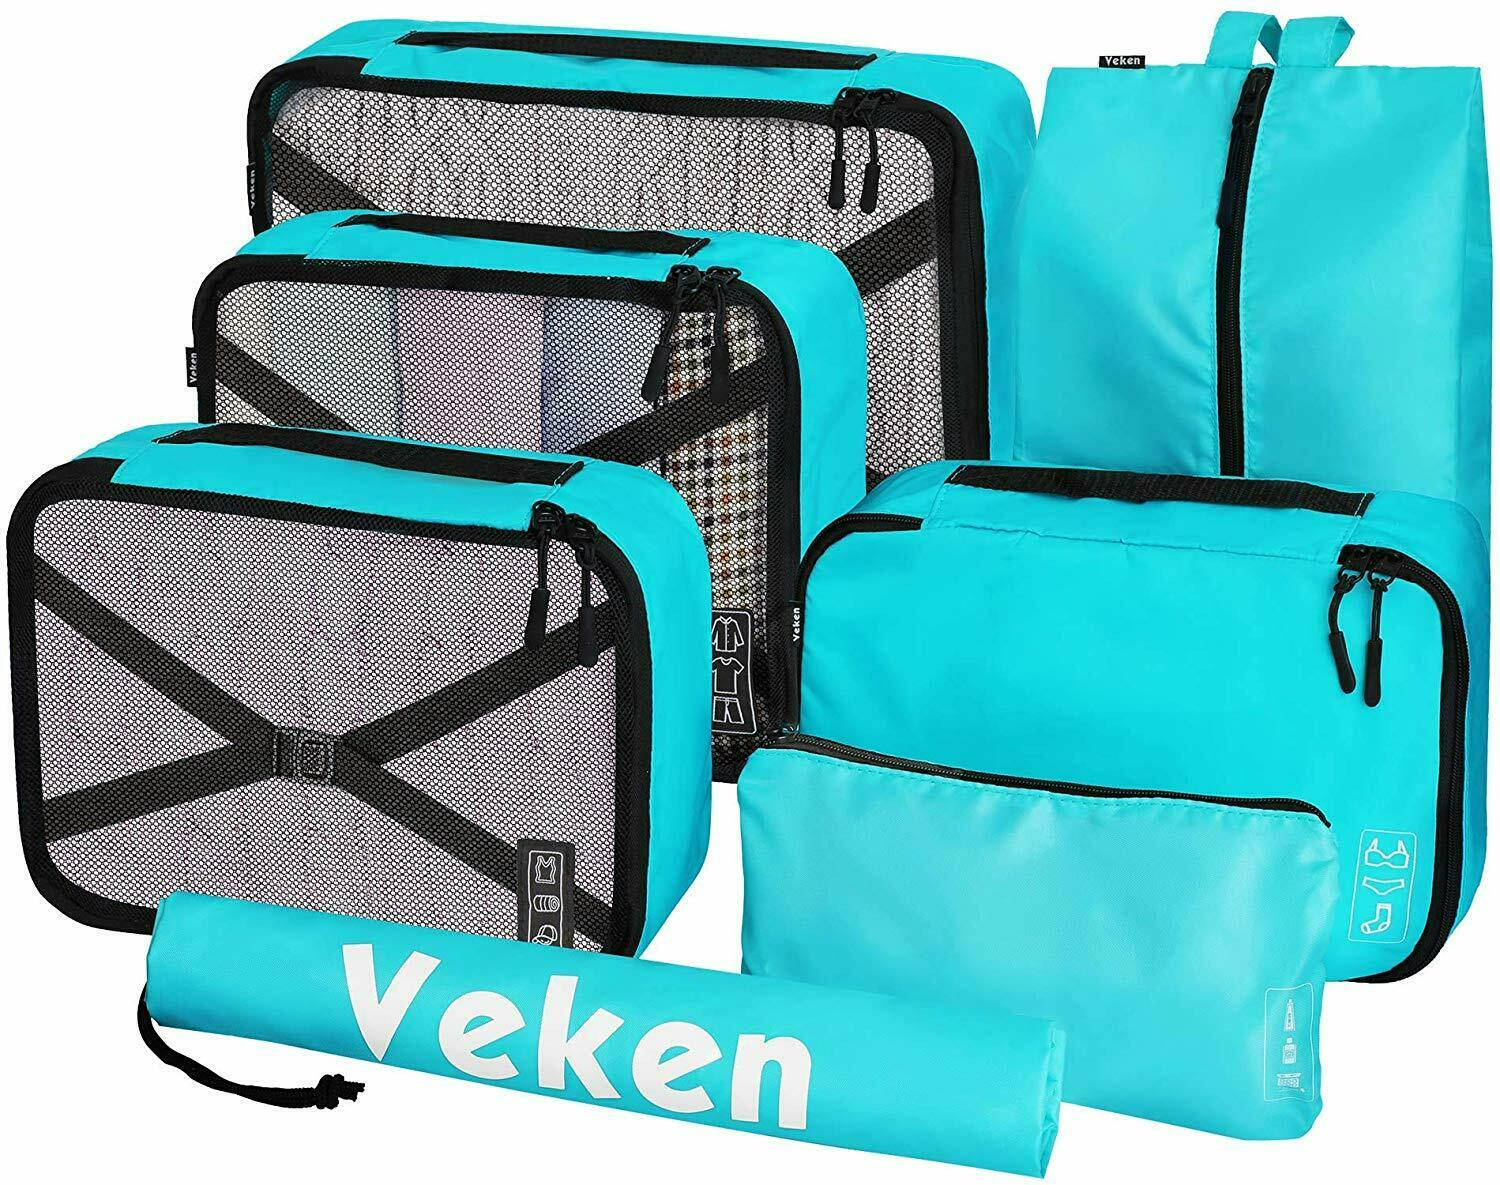 Veken 7 Set Packing Cubes, Travel Organizers Accessories with Laundry ...